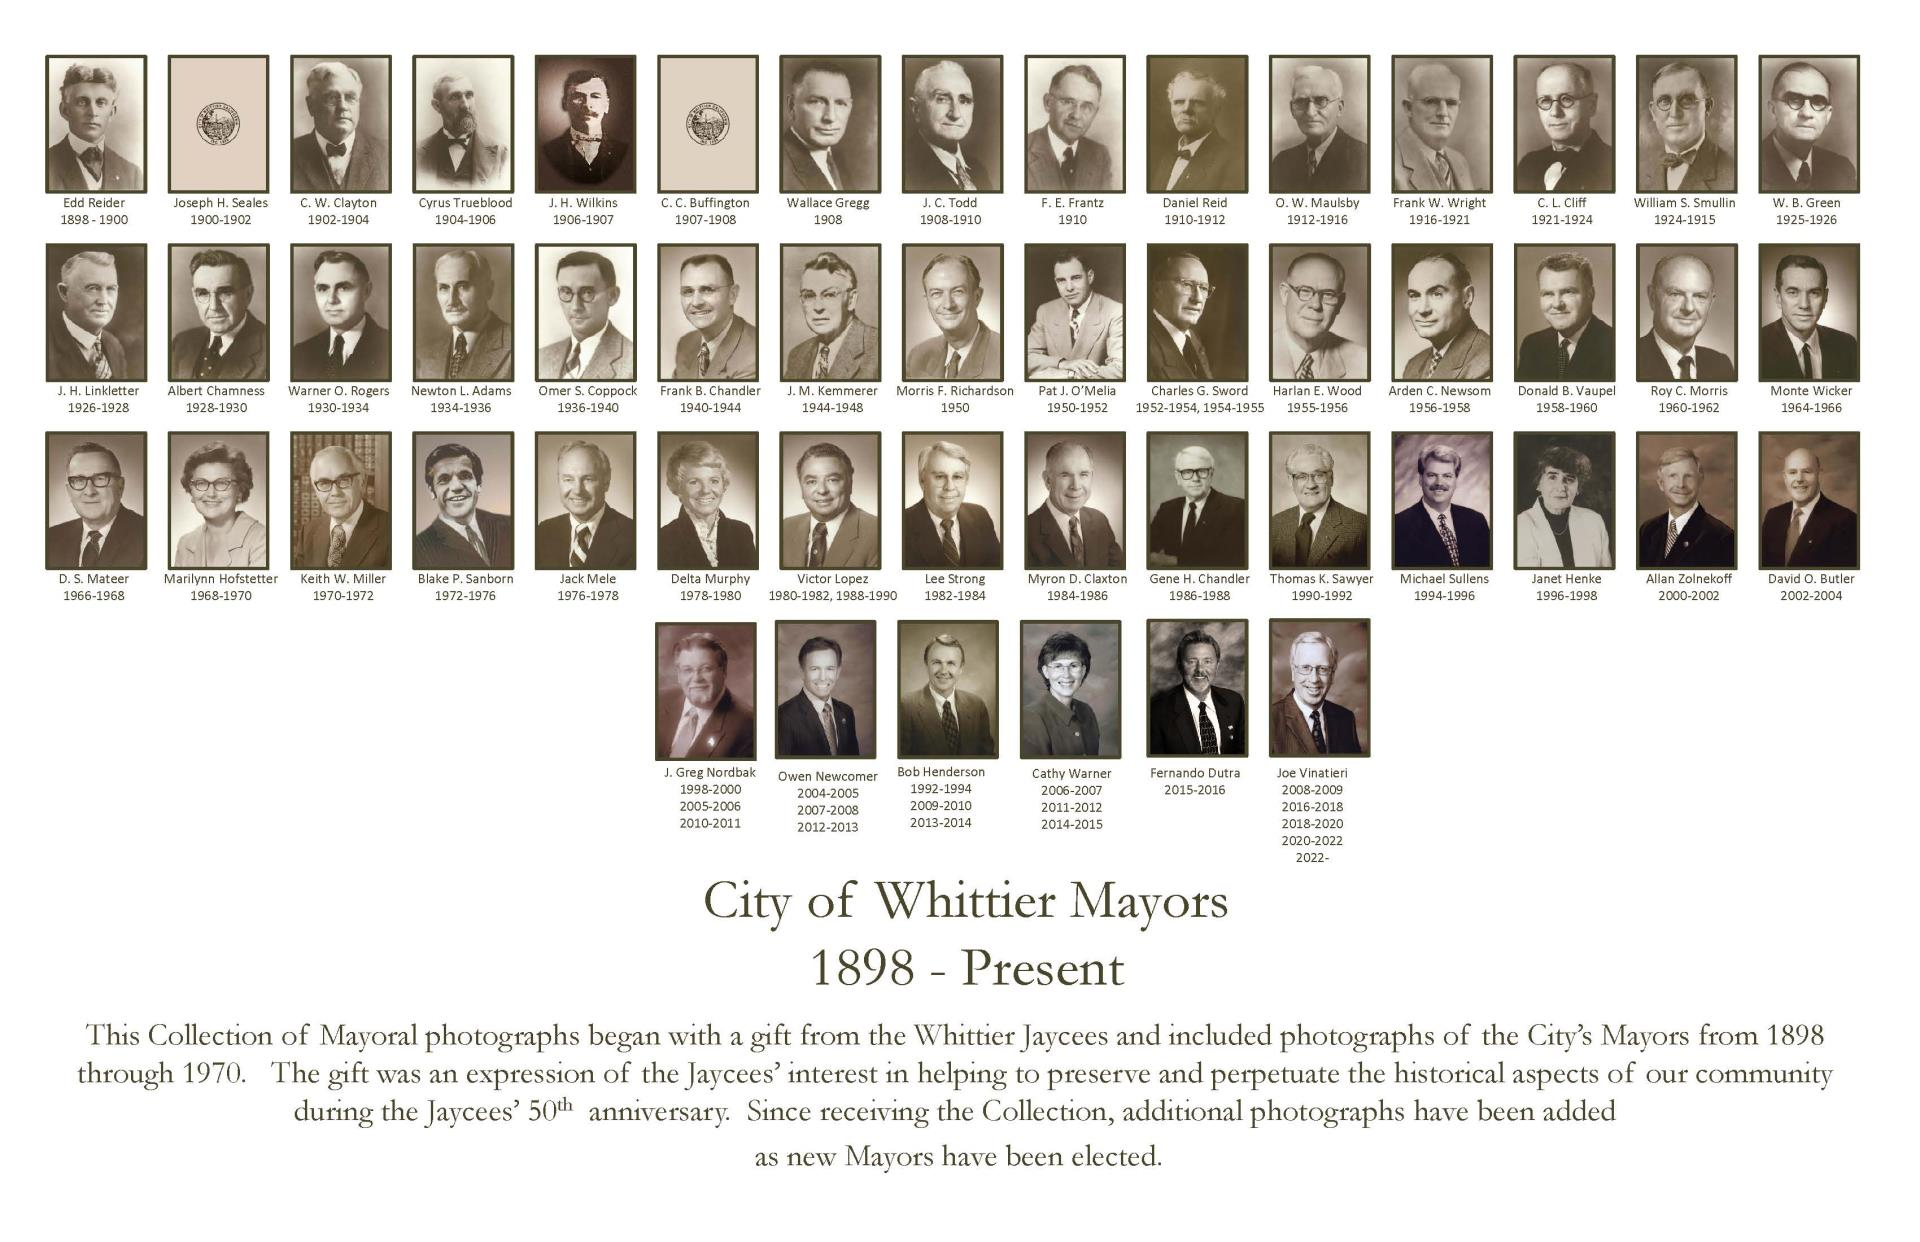 City of Whittier Mayors, 1898 - Present